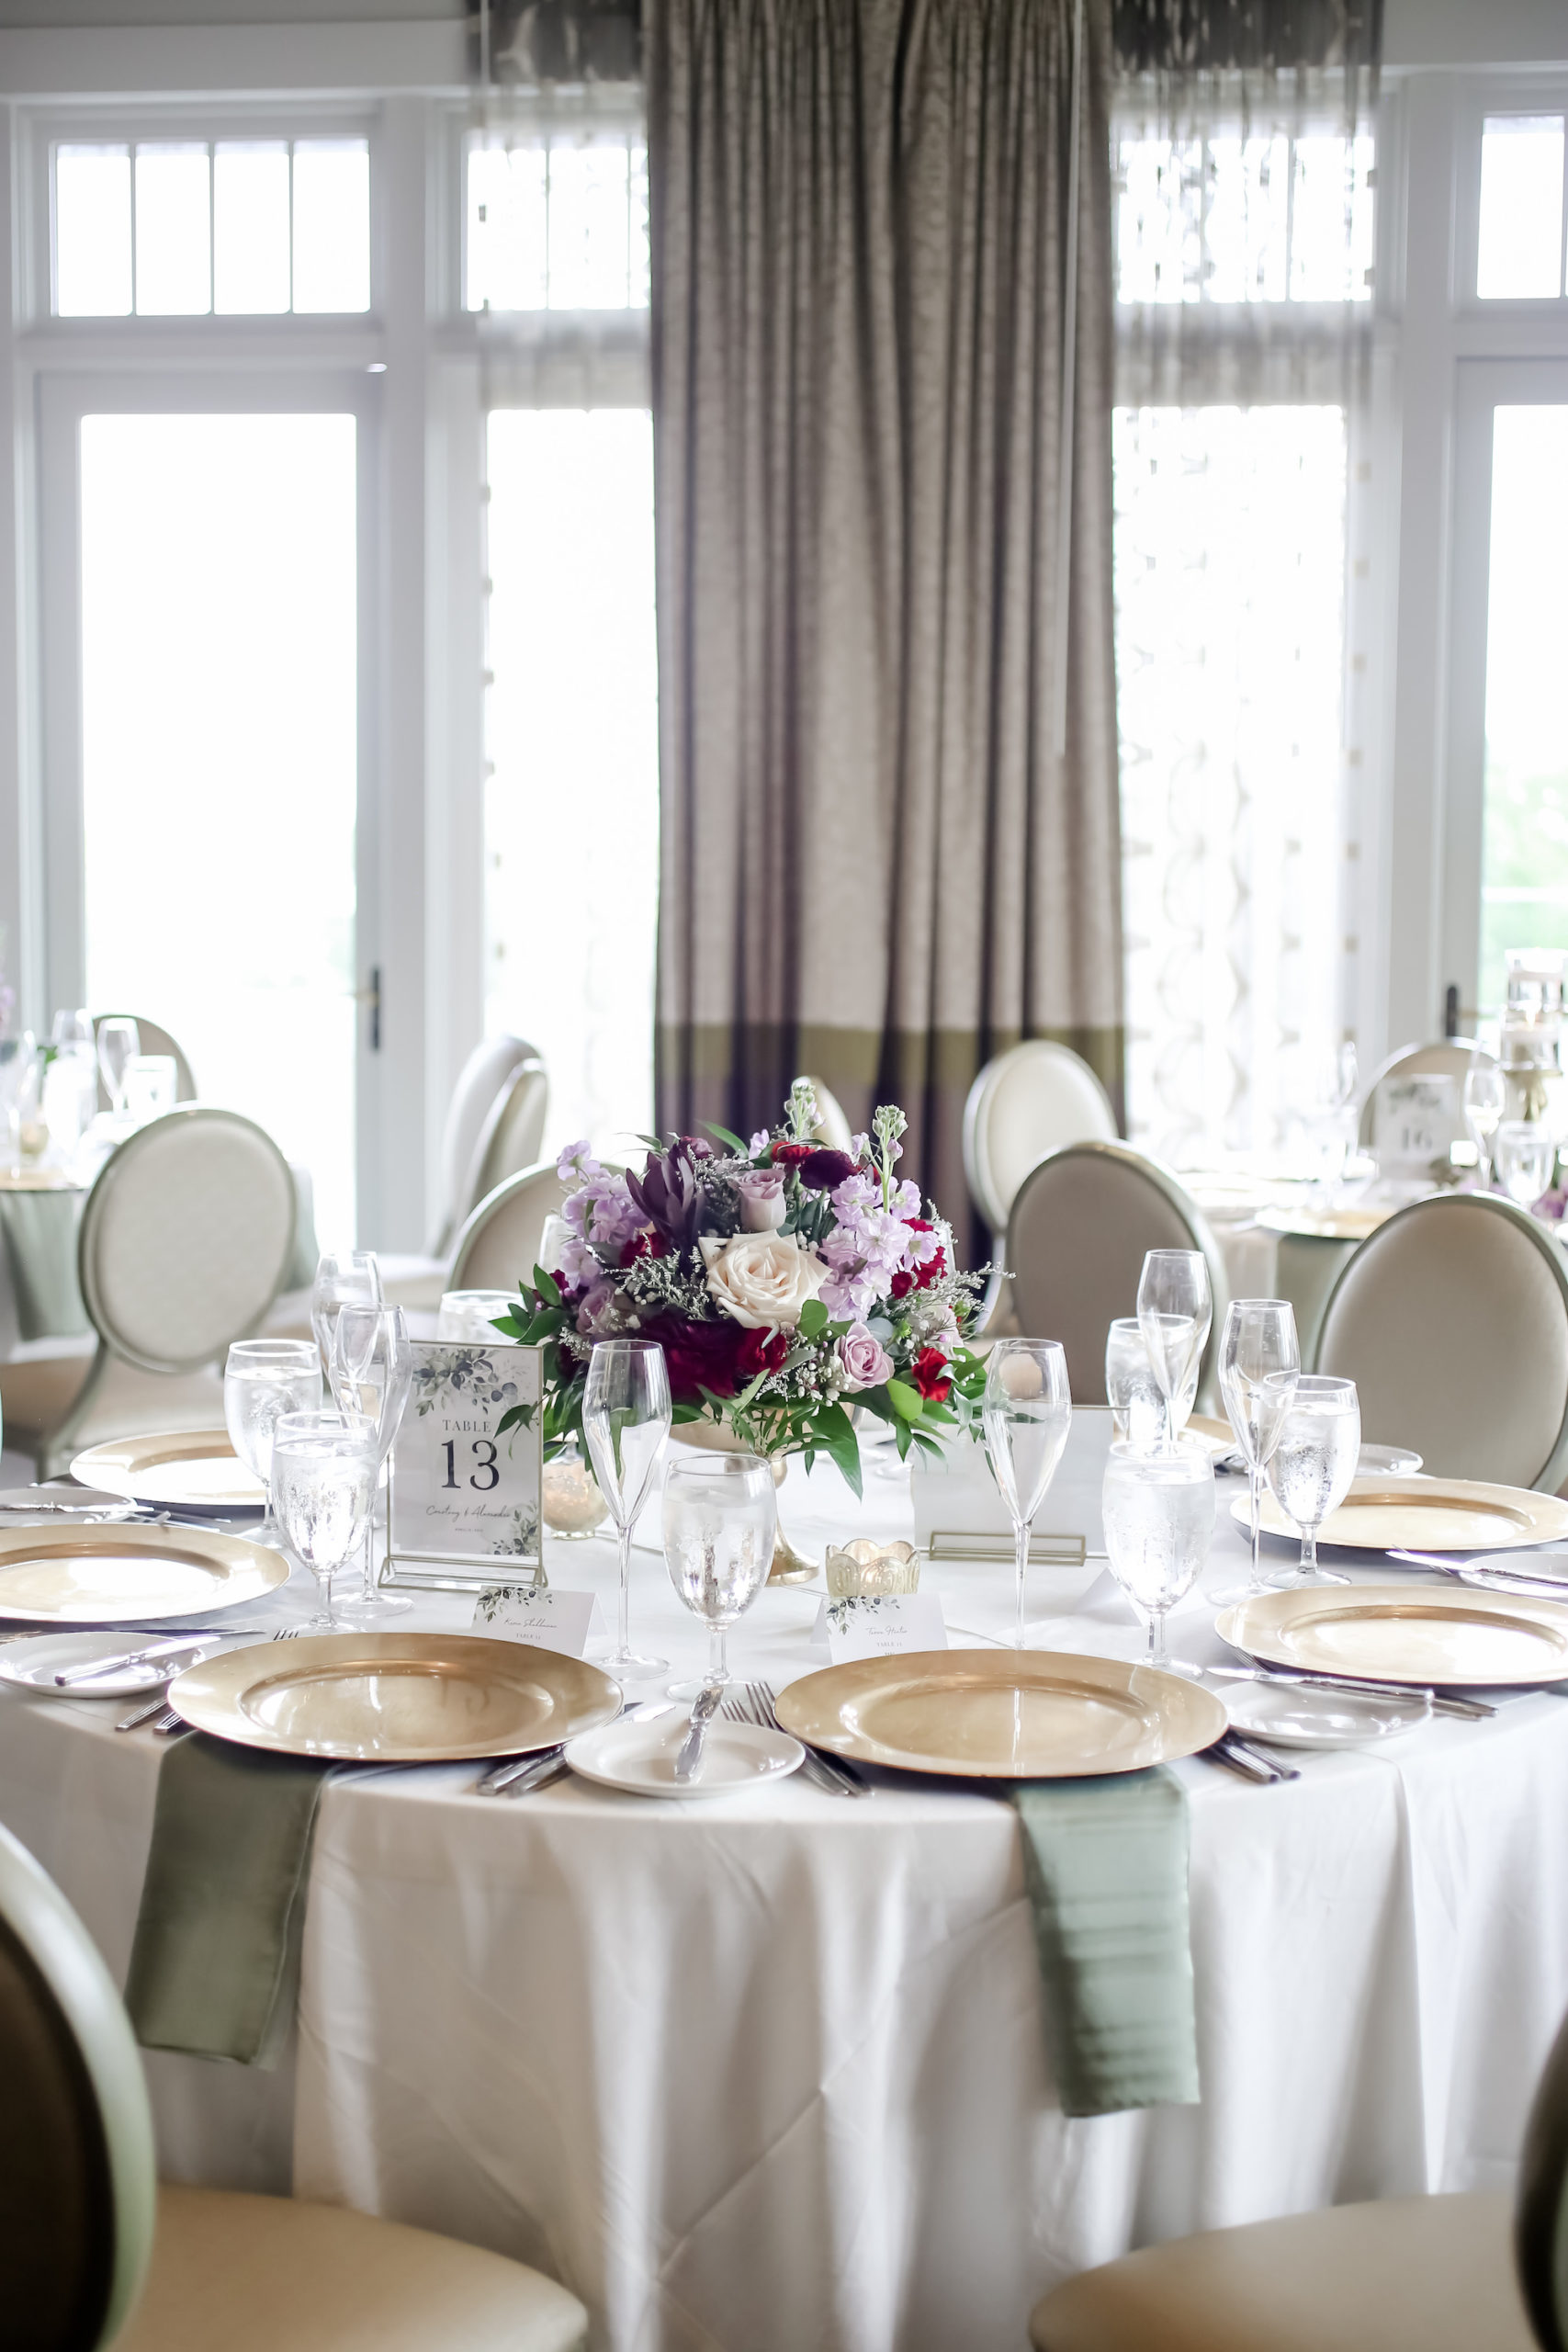 Elegant Spring Time Inspired Wedding Decor at Reception in Chic Ballroom with Natural Lighting, Round Tables with White and Green Linens, Low Floral Centerpieces with Mauve, Purple, Red, and Pink Flowers, Gold Chargers   Florida Downtown St. Pete Boutique Hotel The Birchwood   Tampa Bay Wedding Photographer Lifelong Photography Studio   Planner Blue Skies Weddings and Events